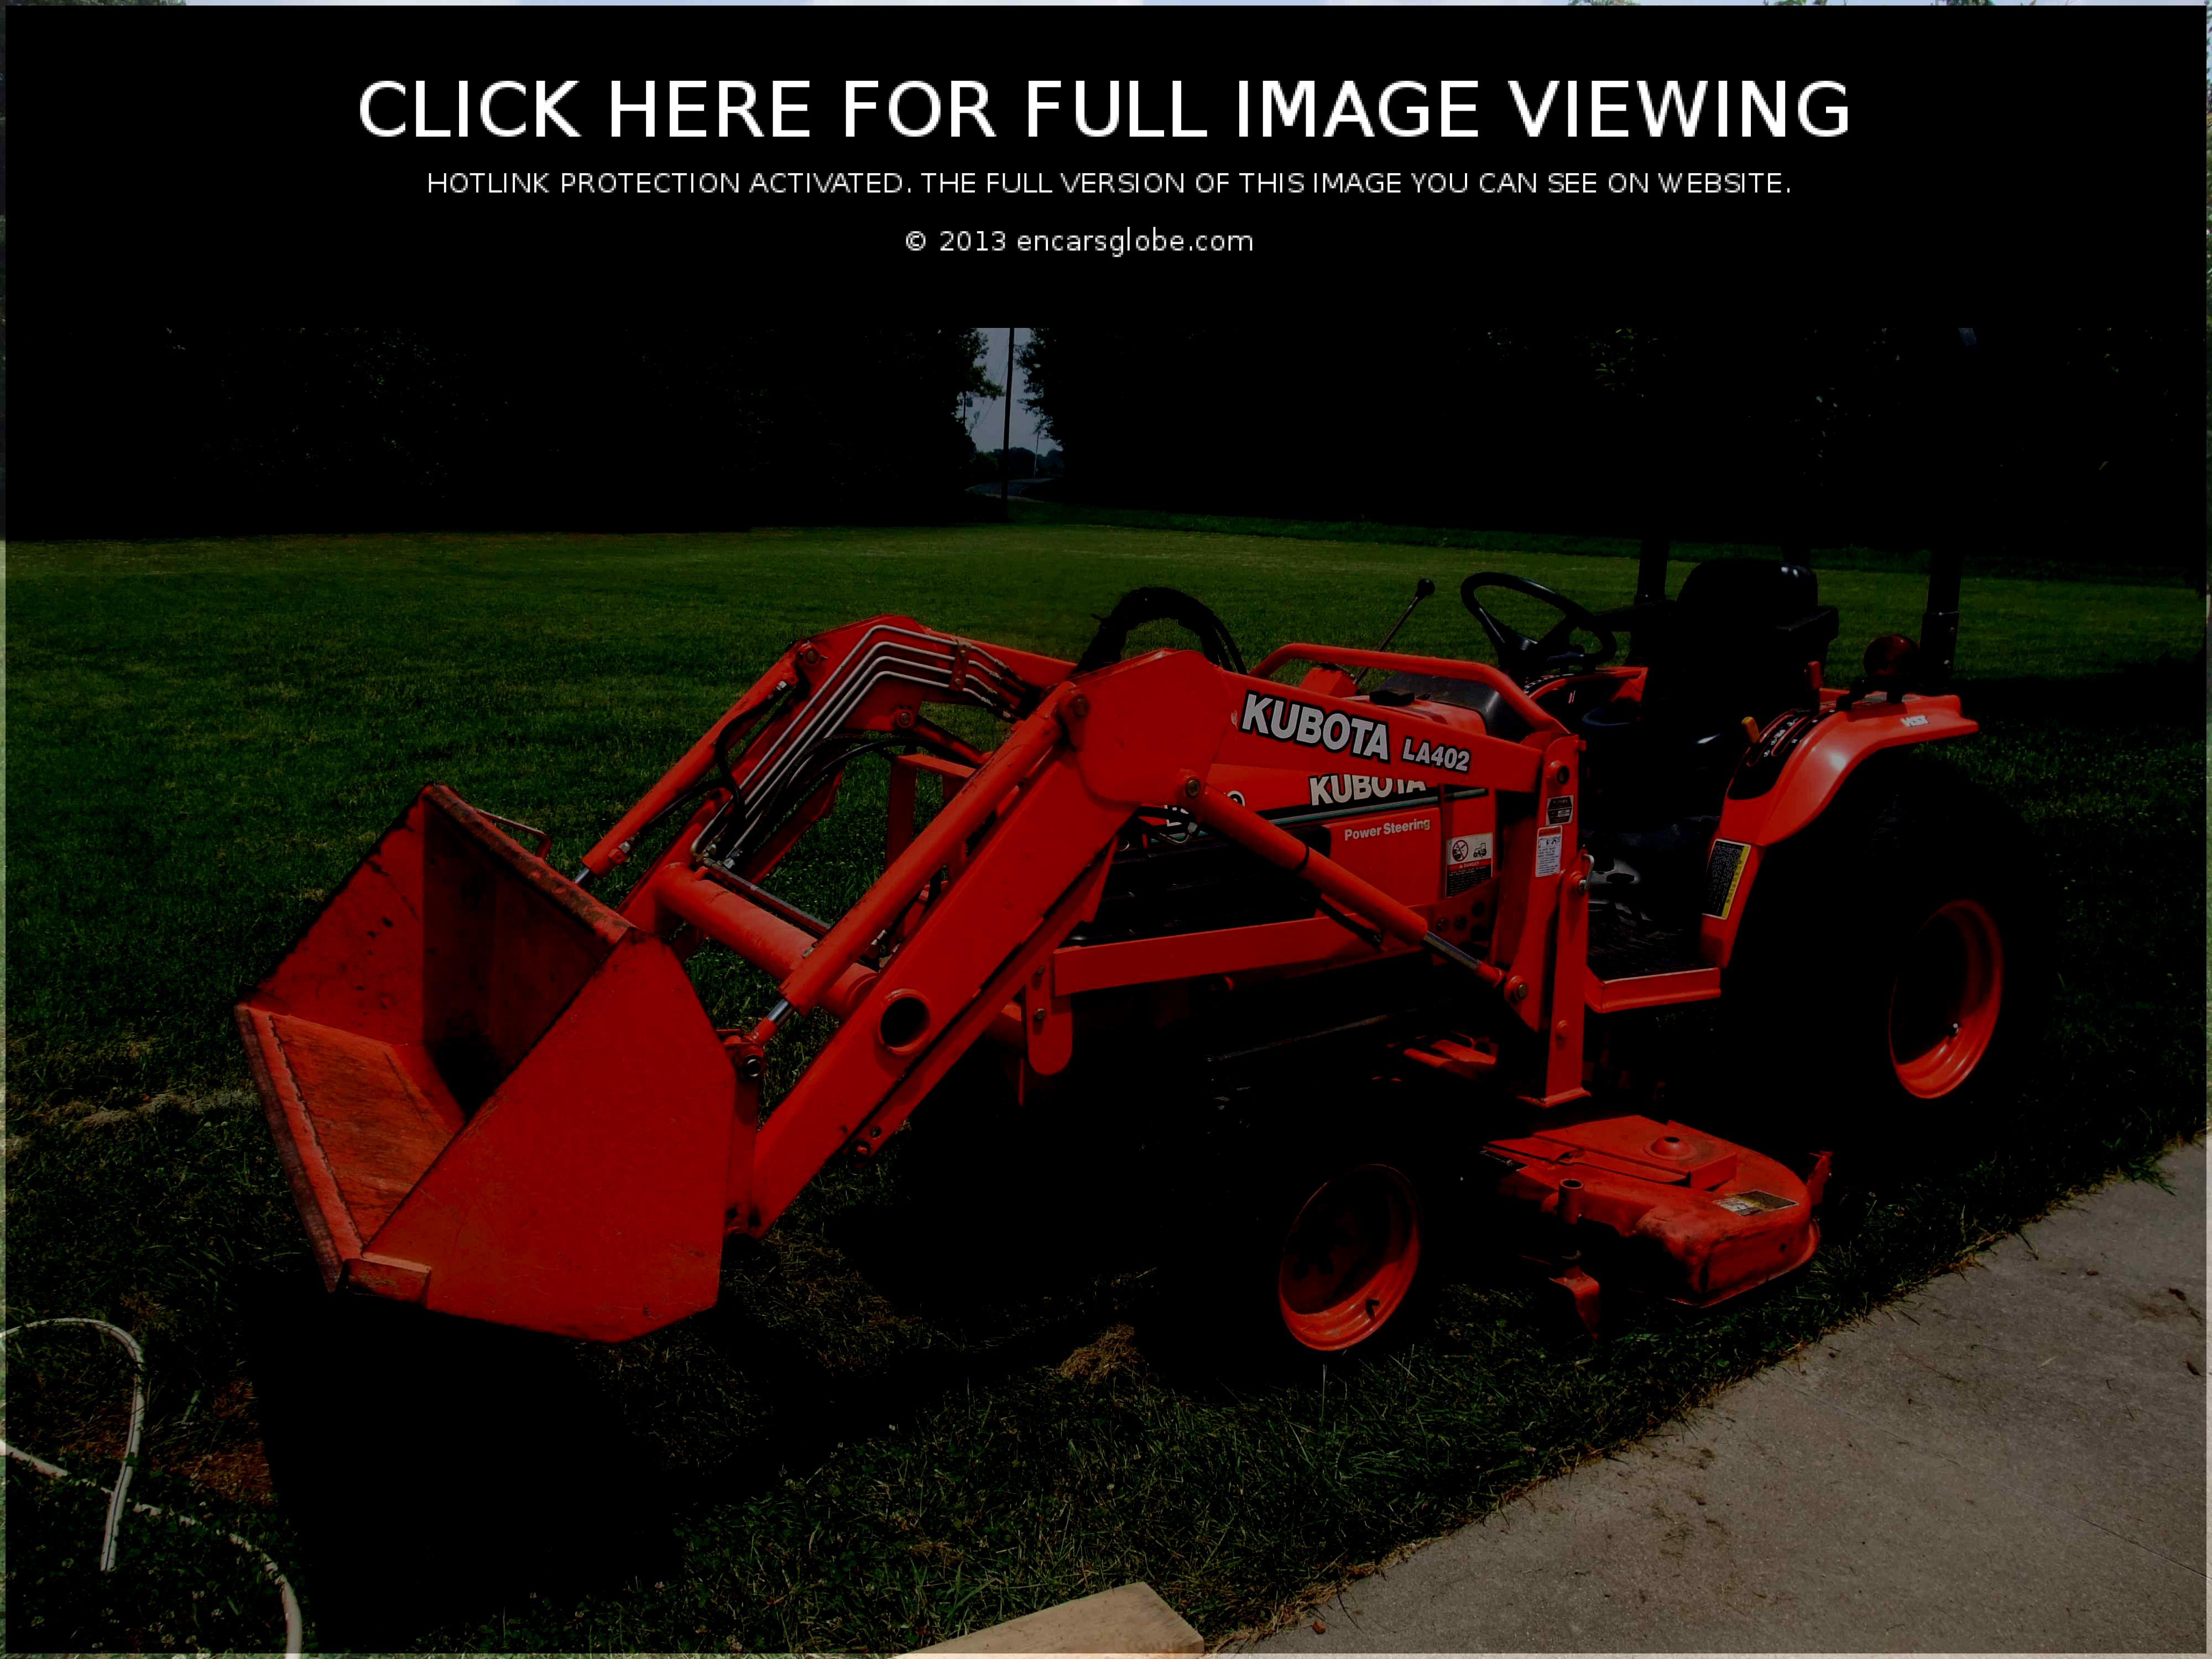 Kubota M-Series Photo Gallery: Photo #02 out of 10, Image Size ...